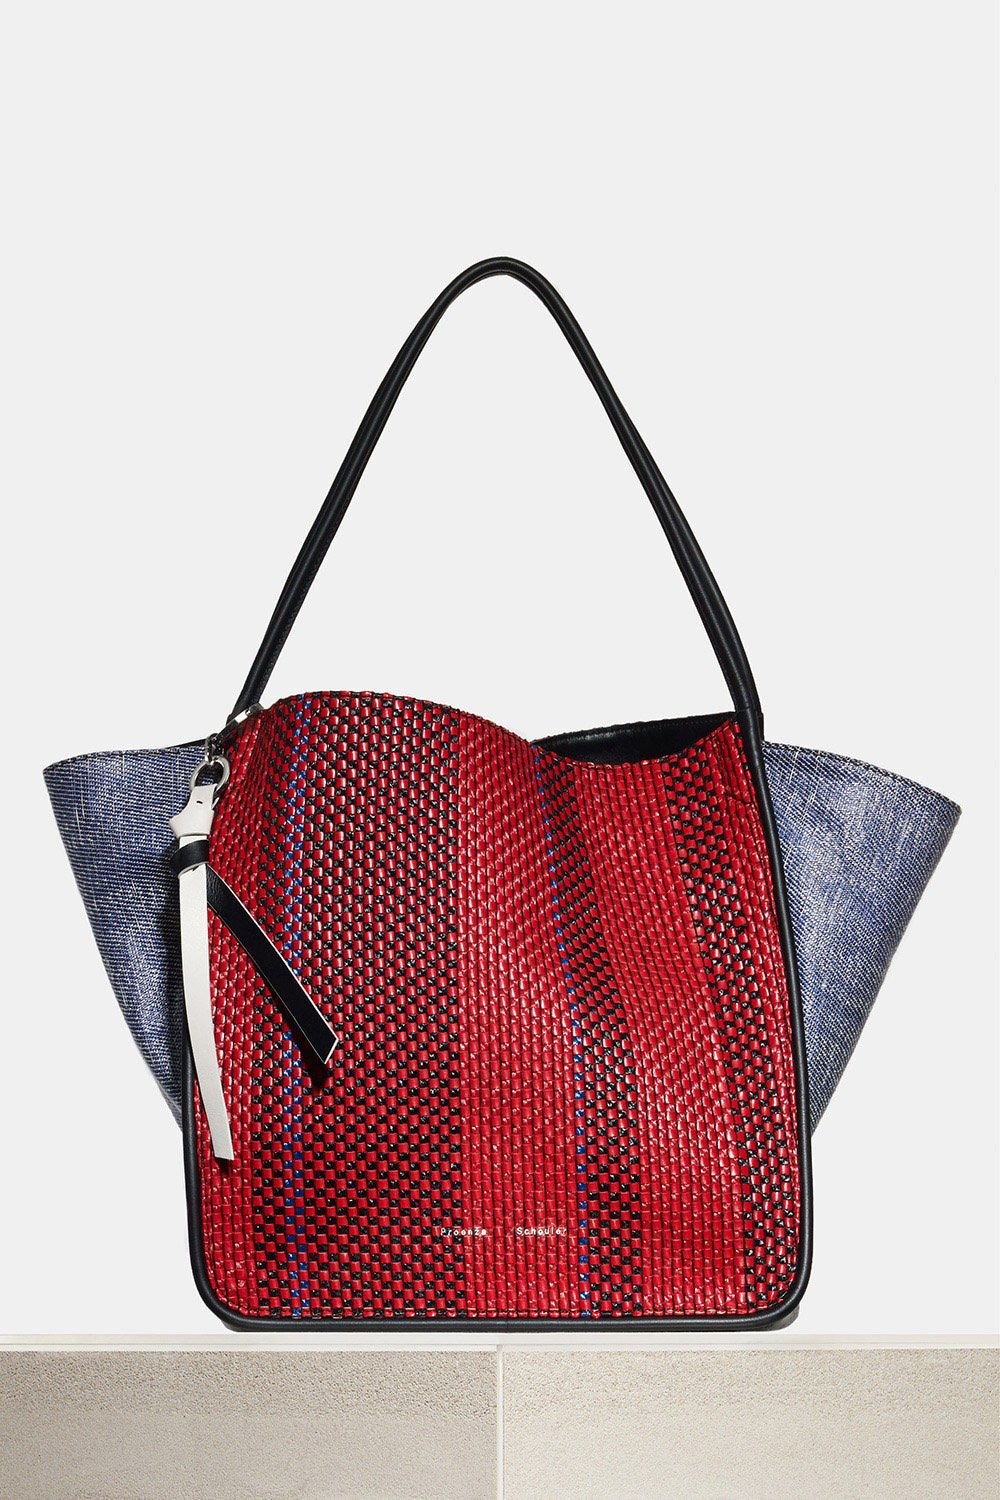 proenza schouler spring 2018 red and blue mixed woven extra large tote bag